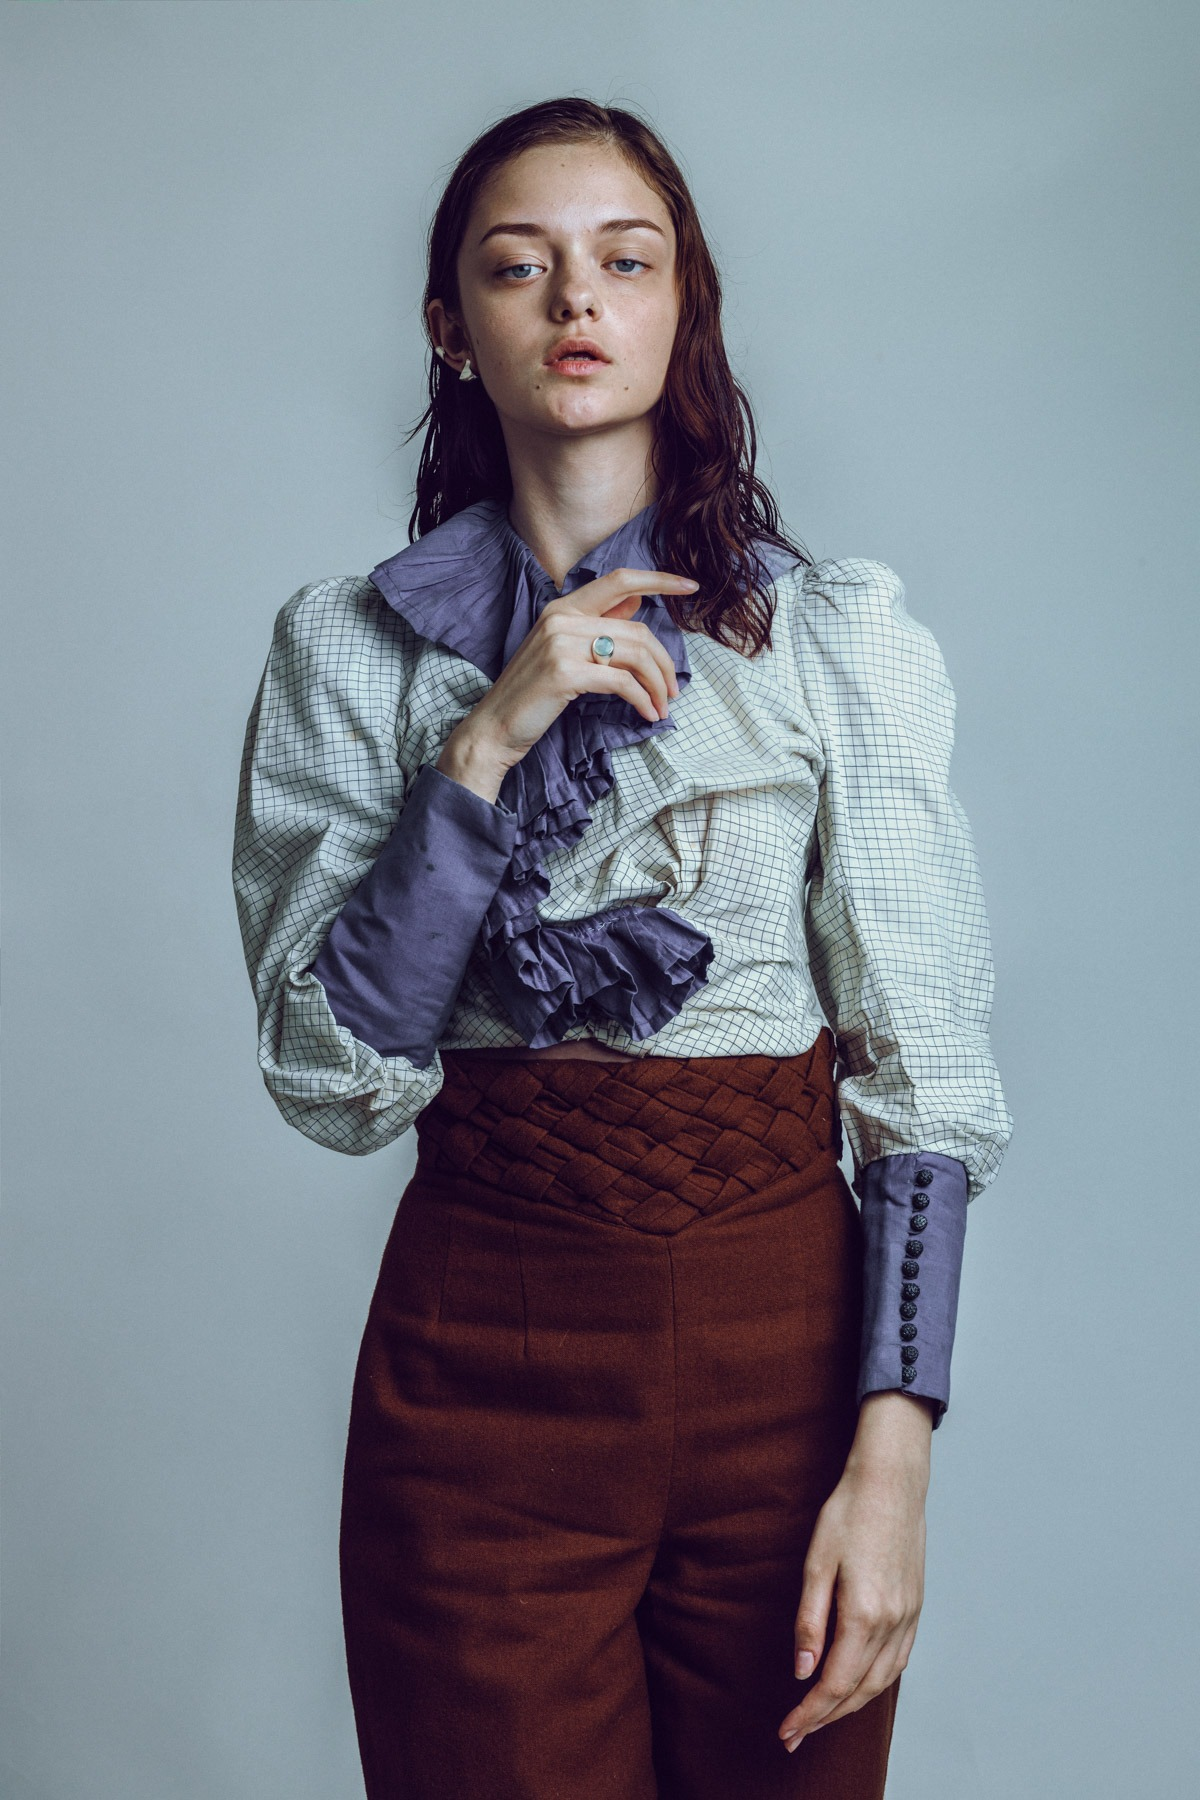 anmoda models tokyo alyona wearing a vintage checked shirt and dlaw jewelry, holding flowers in a studio in tokyo